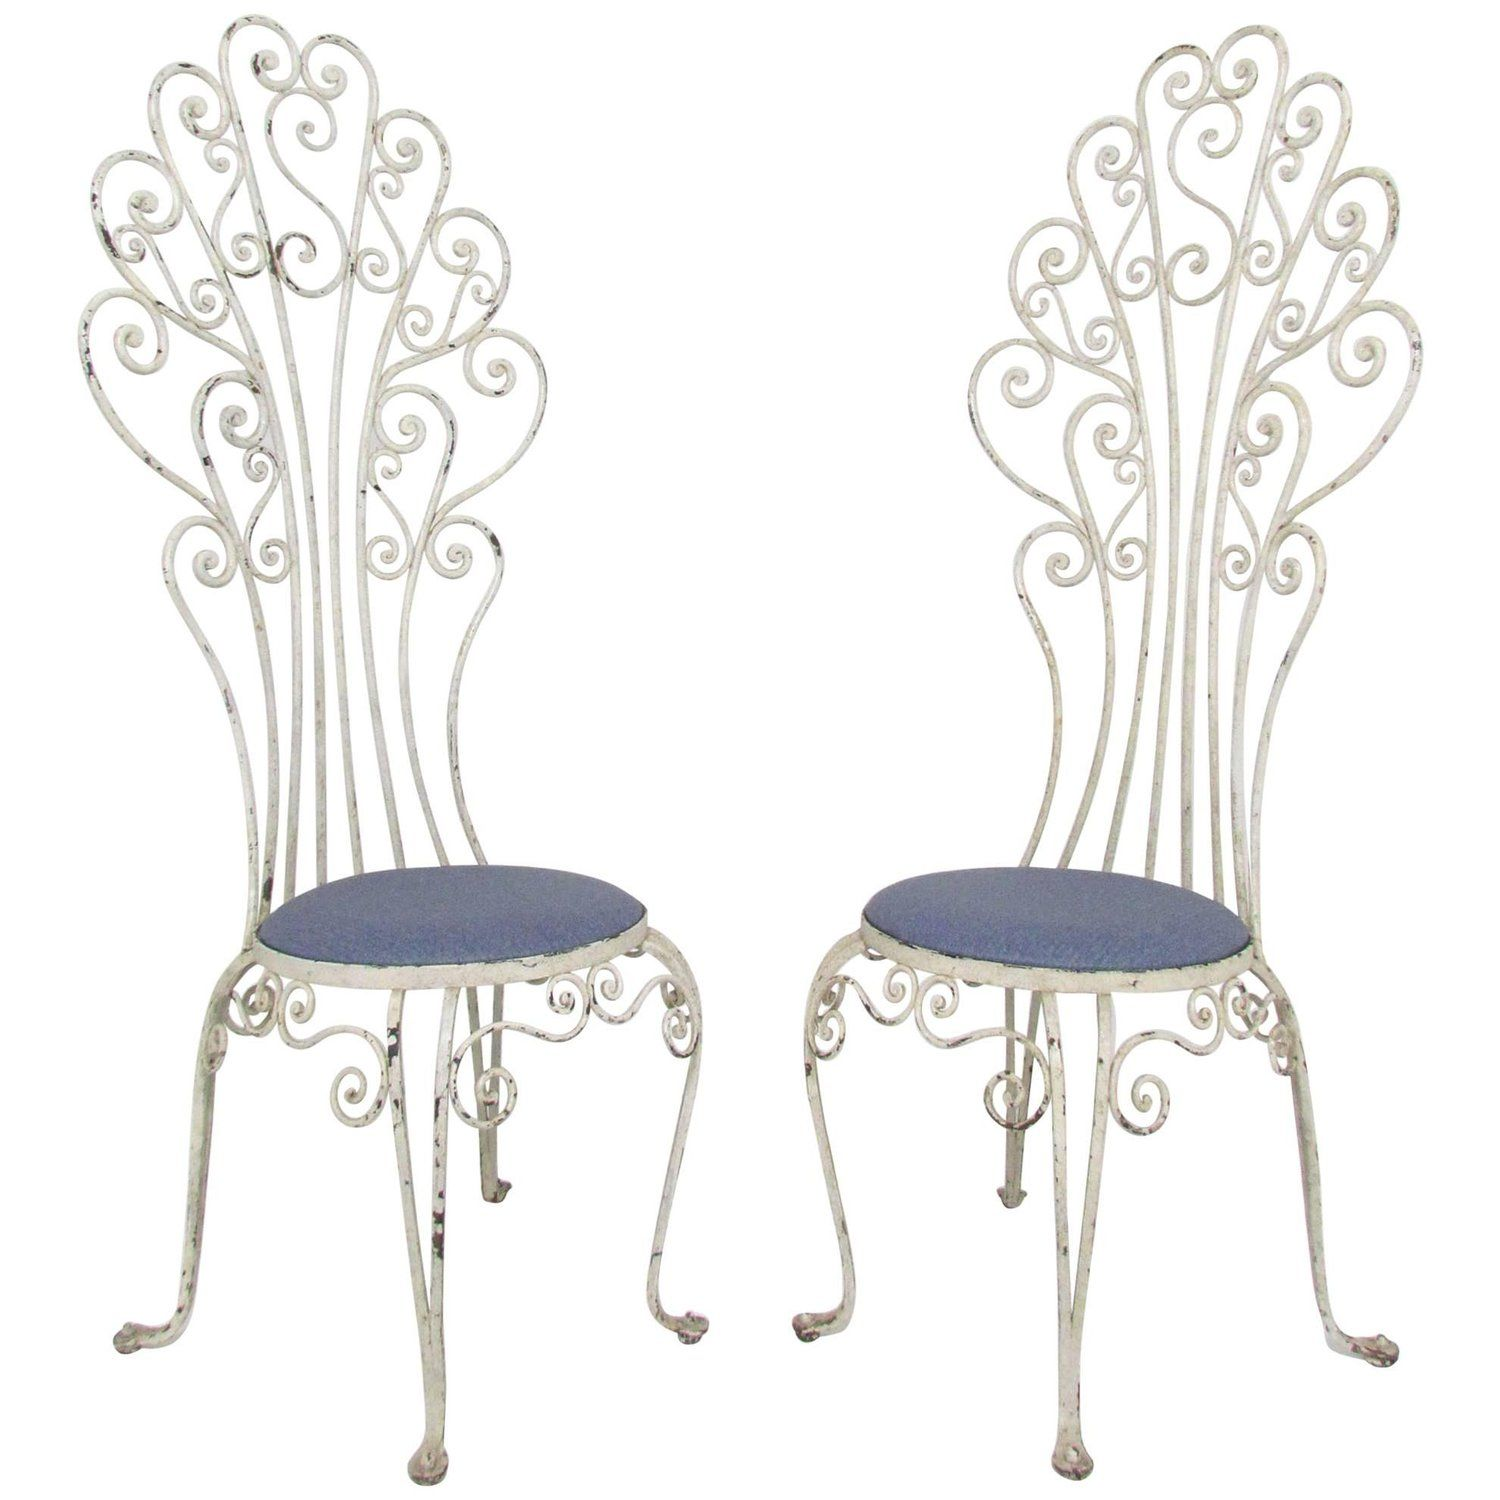 Pair Of High Back Peacock Wrought Iron Patio Chairs Circa 1960s